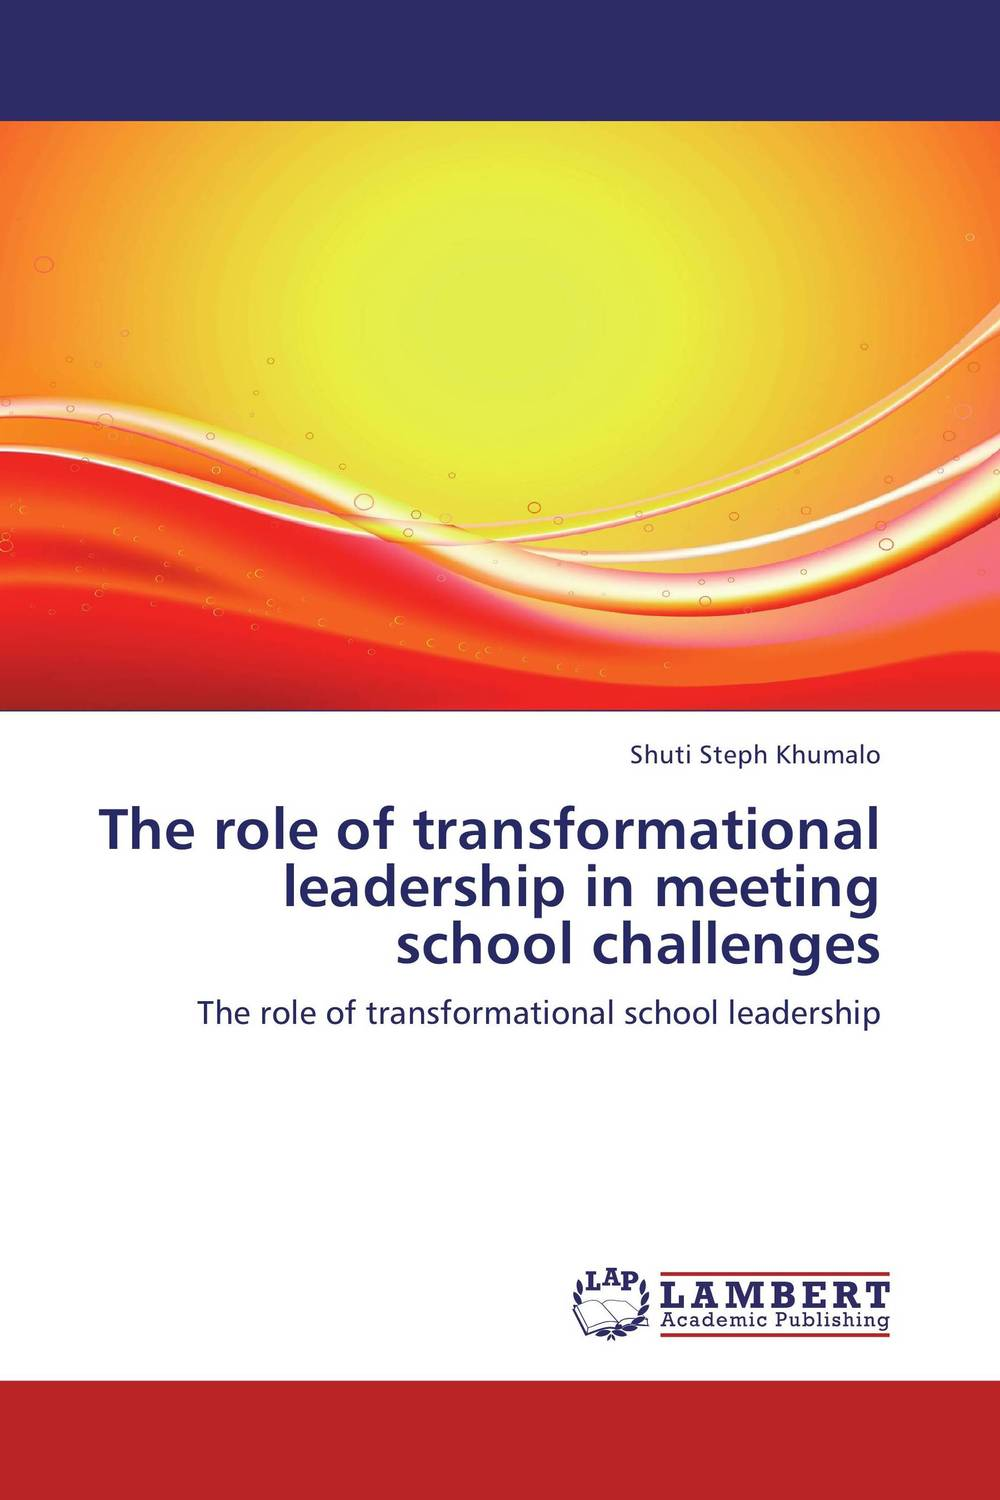 The role of transformational leadership in meeting school challenges role of school leadership in promoting moral integrity among students